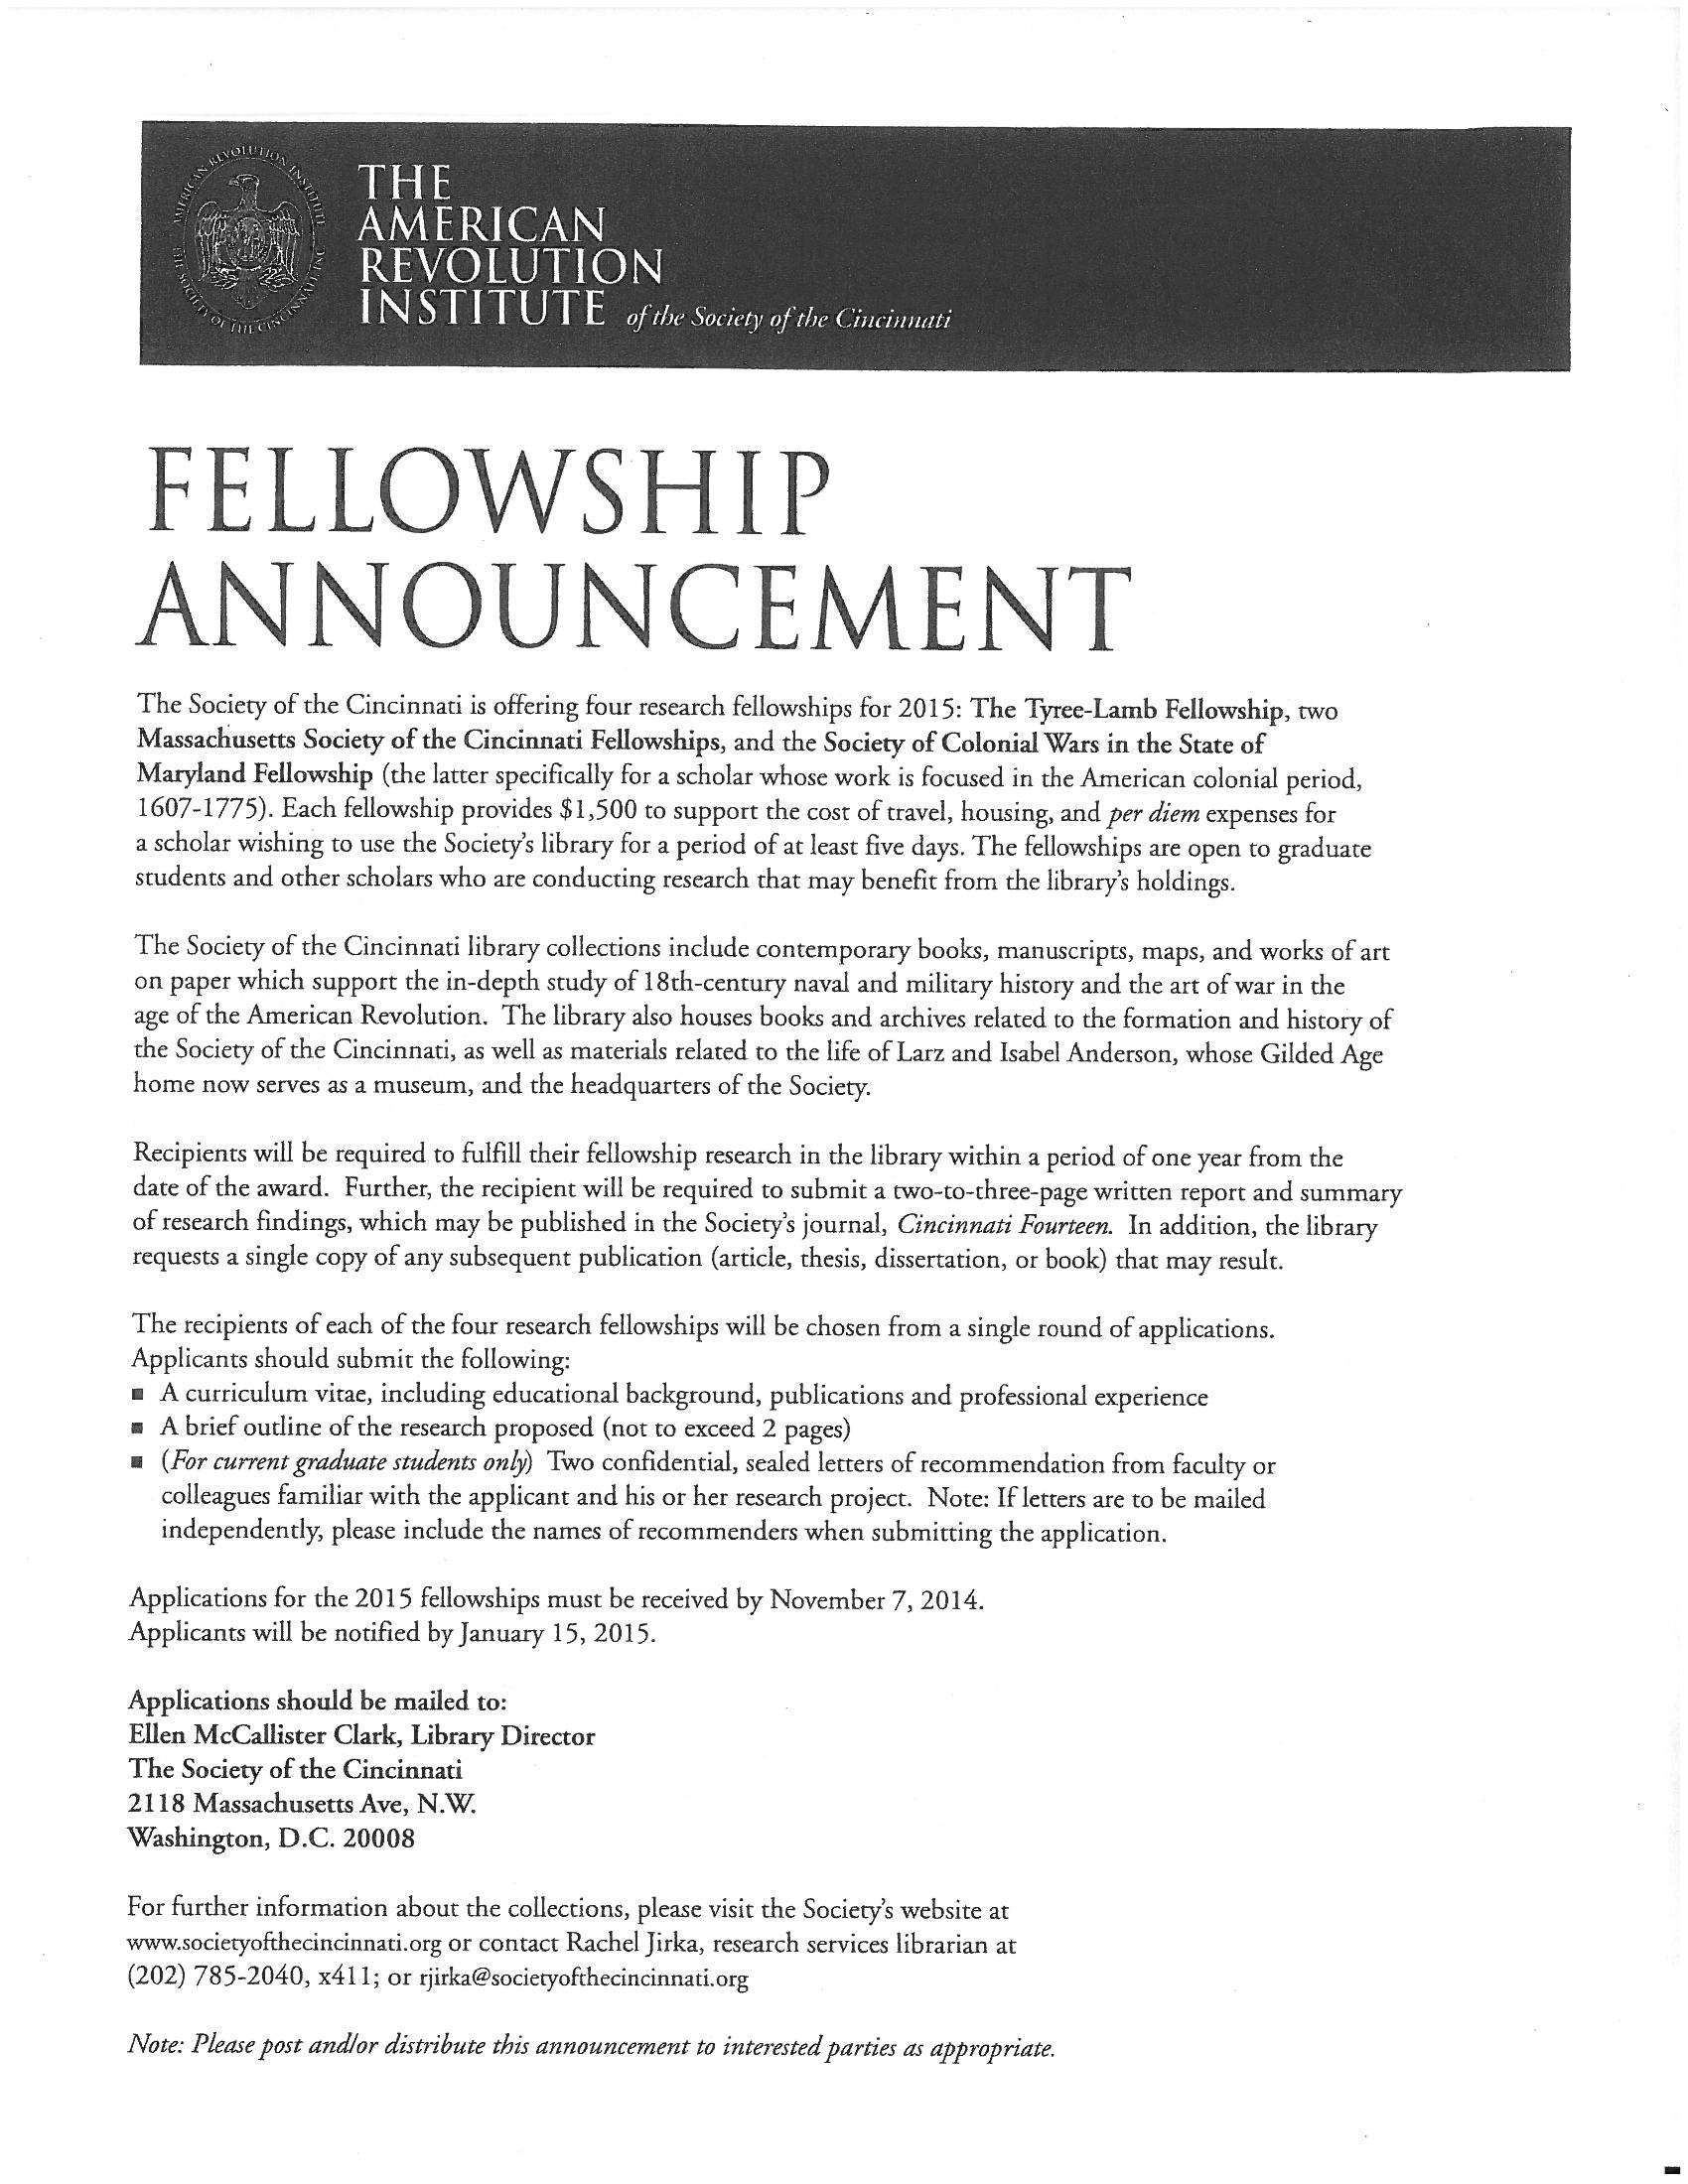 ford dissertation fellowship announcement From transforming conditions for low-wage workers to identifying internet  security vulnerabilities, from celebrating the african american string band  tradition to.